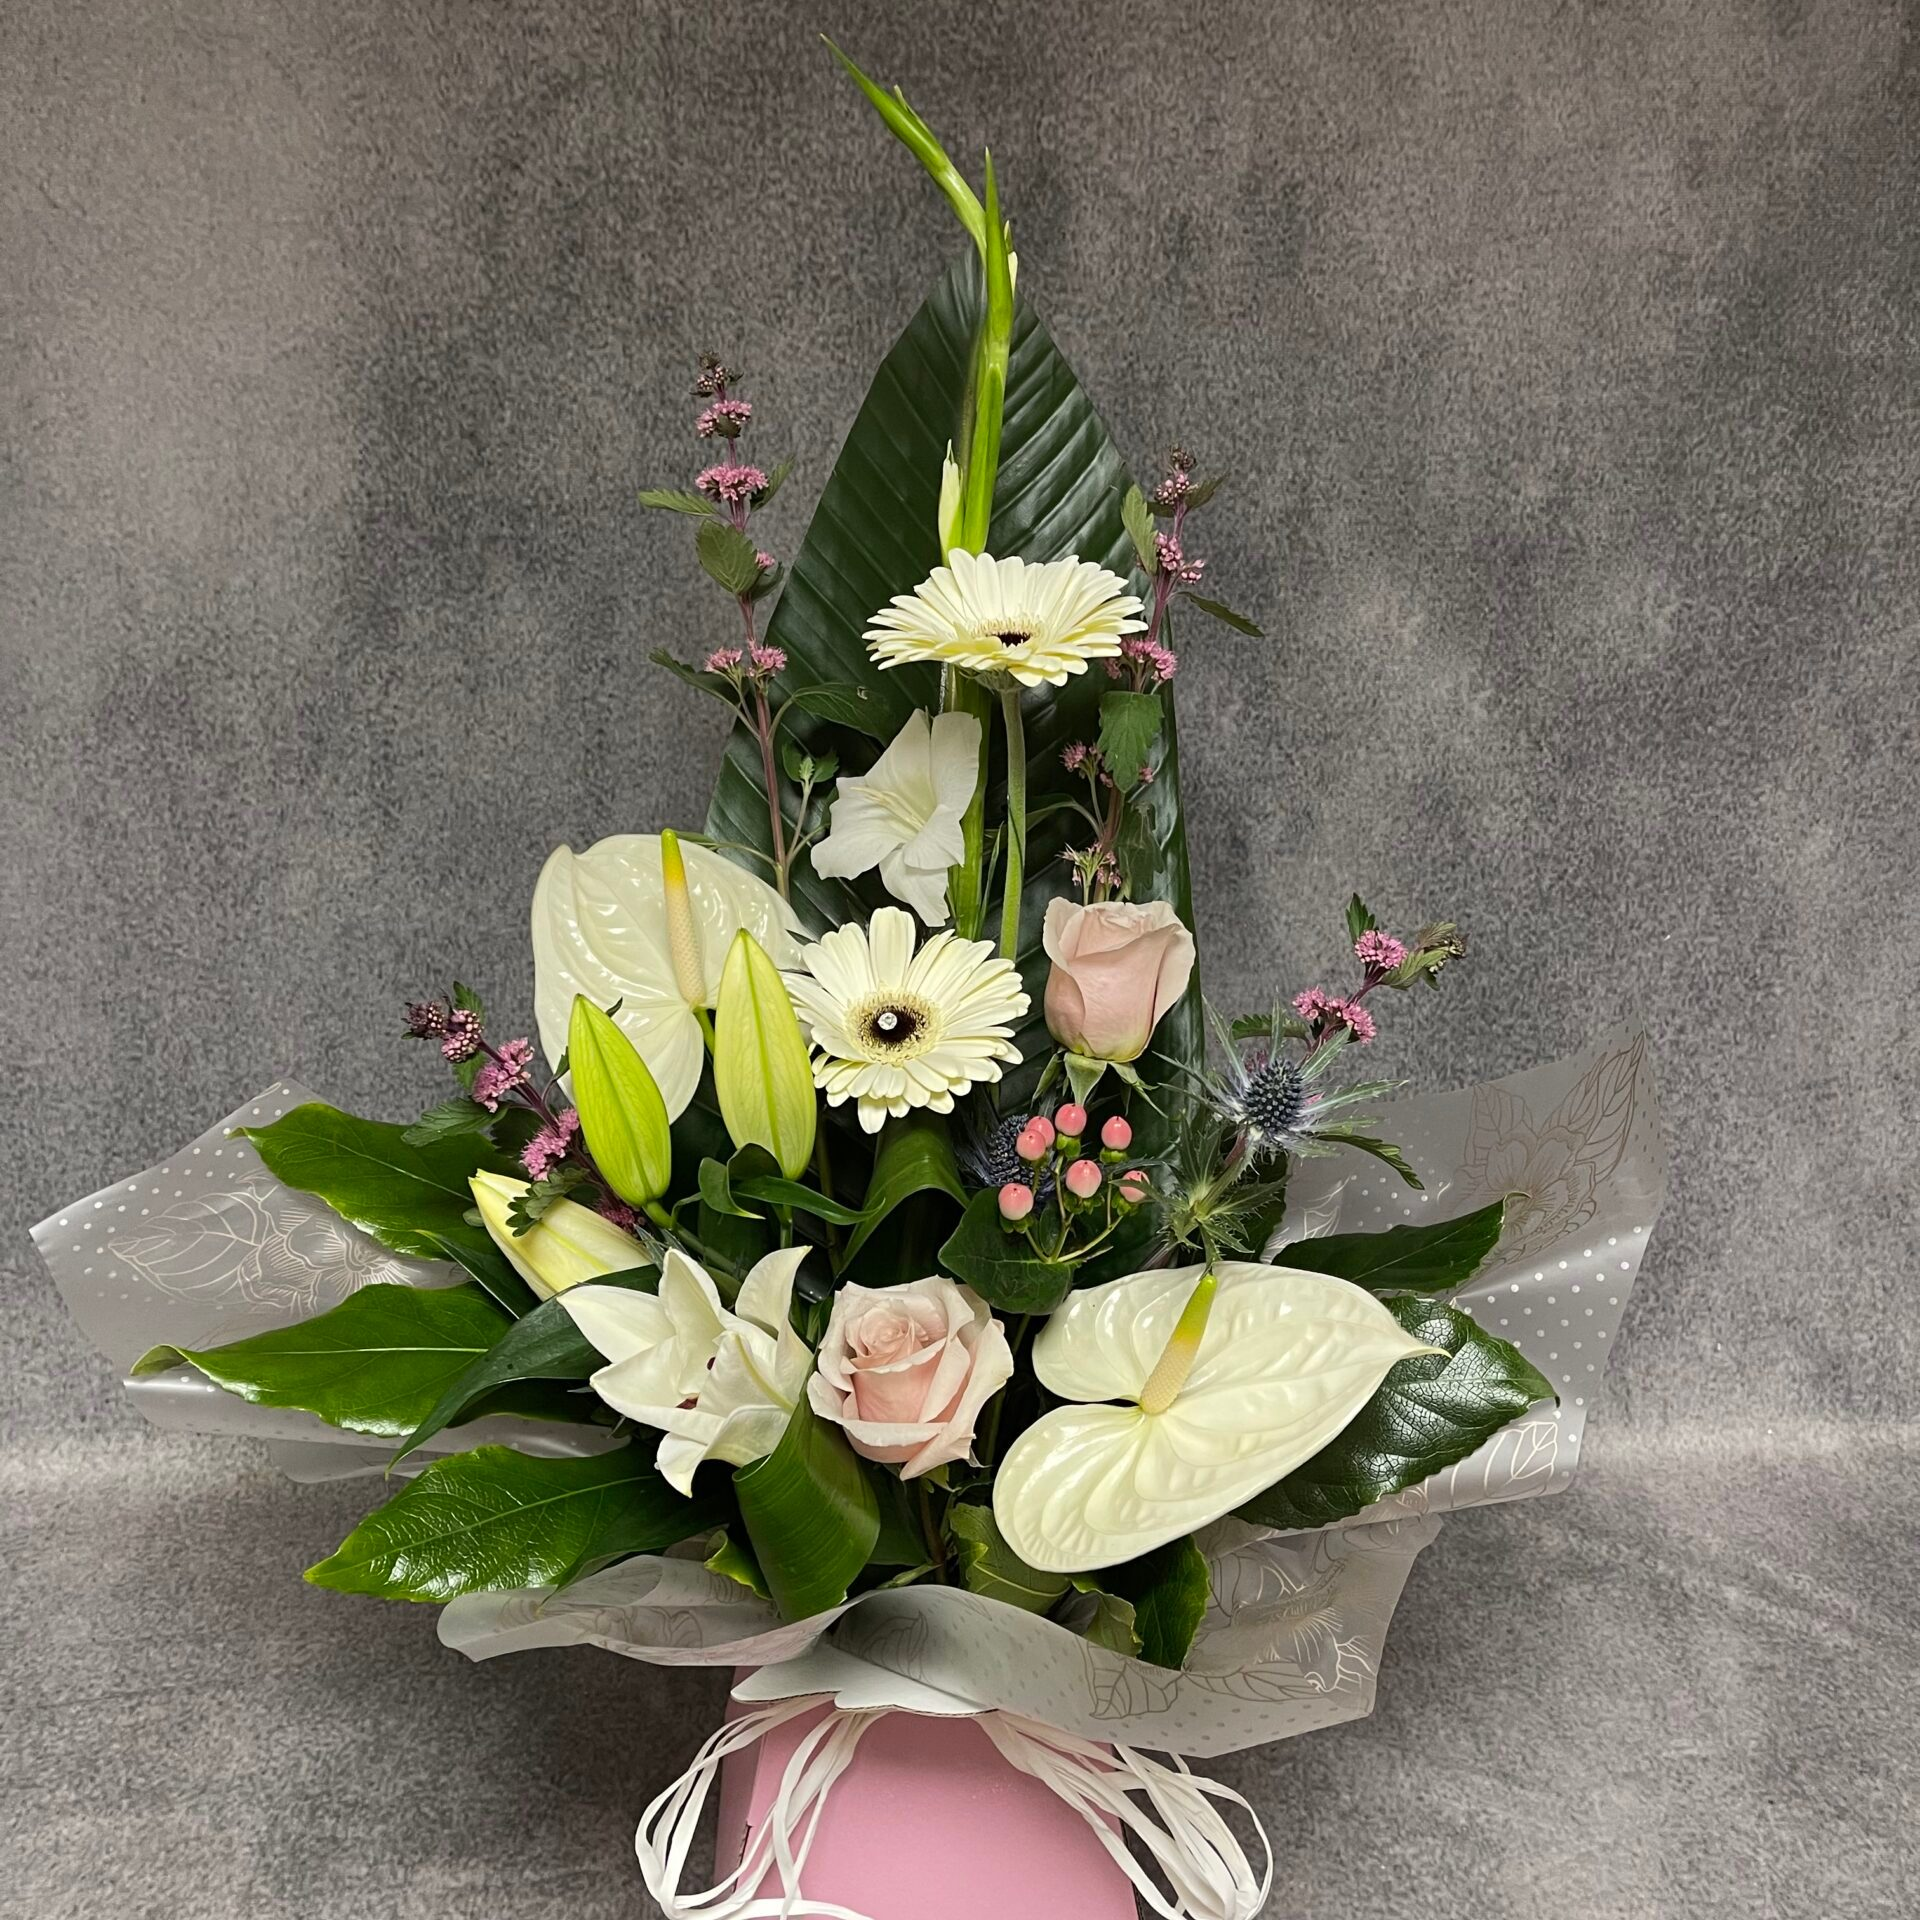 In this image, the bouquet has a somewhat triangular shape. It is in a small, pink box and big green leaves are the base for the bouquet. In the middle are a range of white flowers.